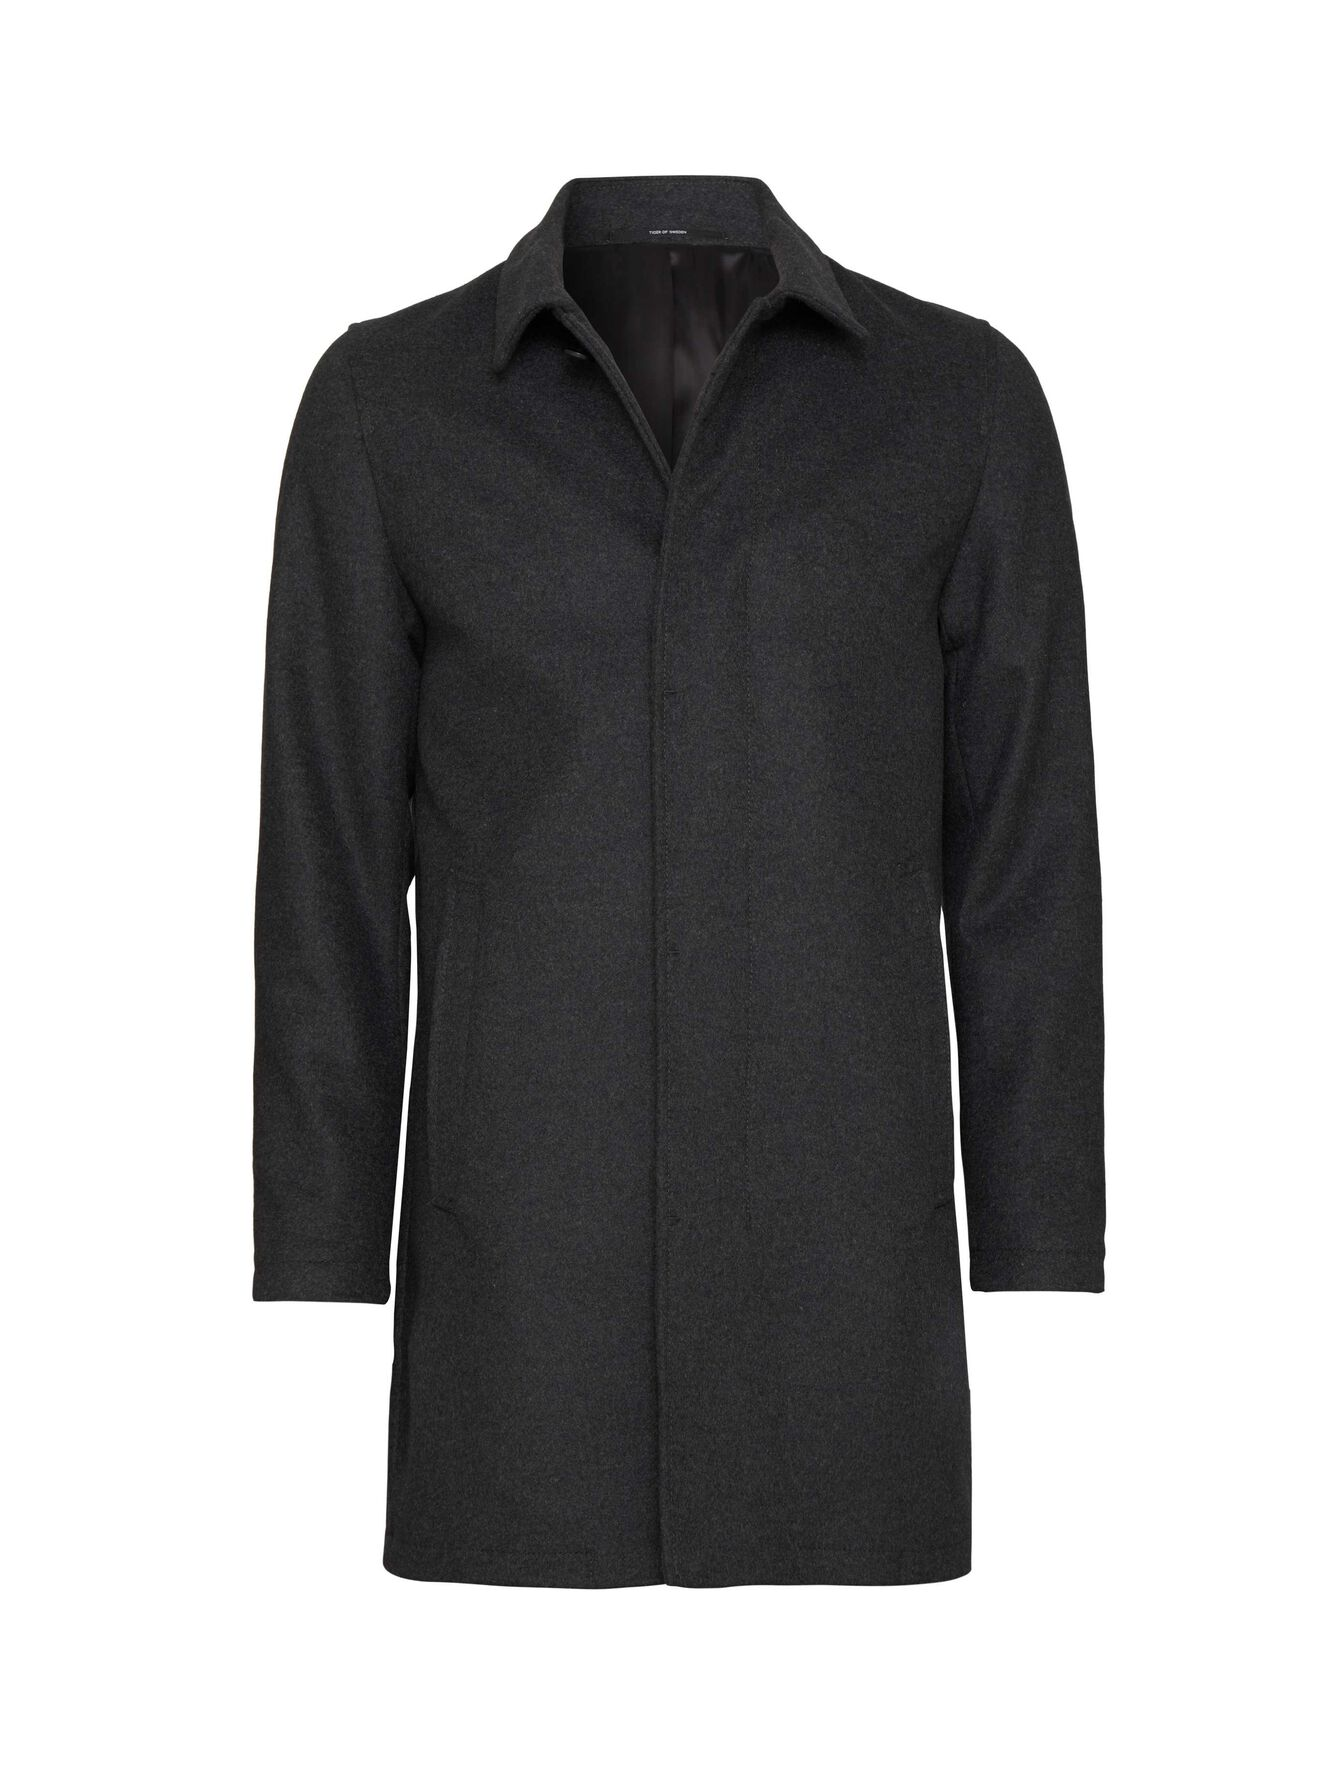 Bruiser15 Coat in Charcoal from Tiger of Sweden